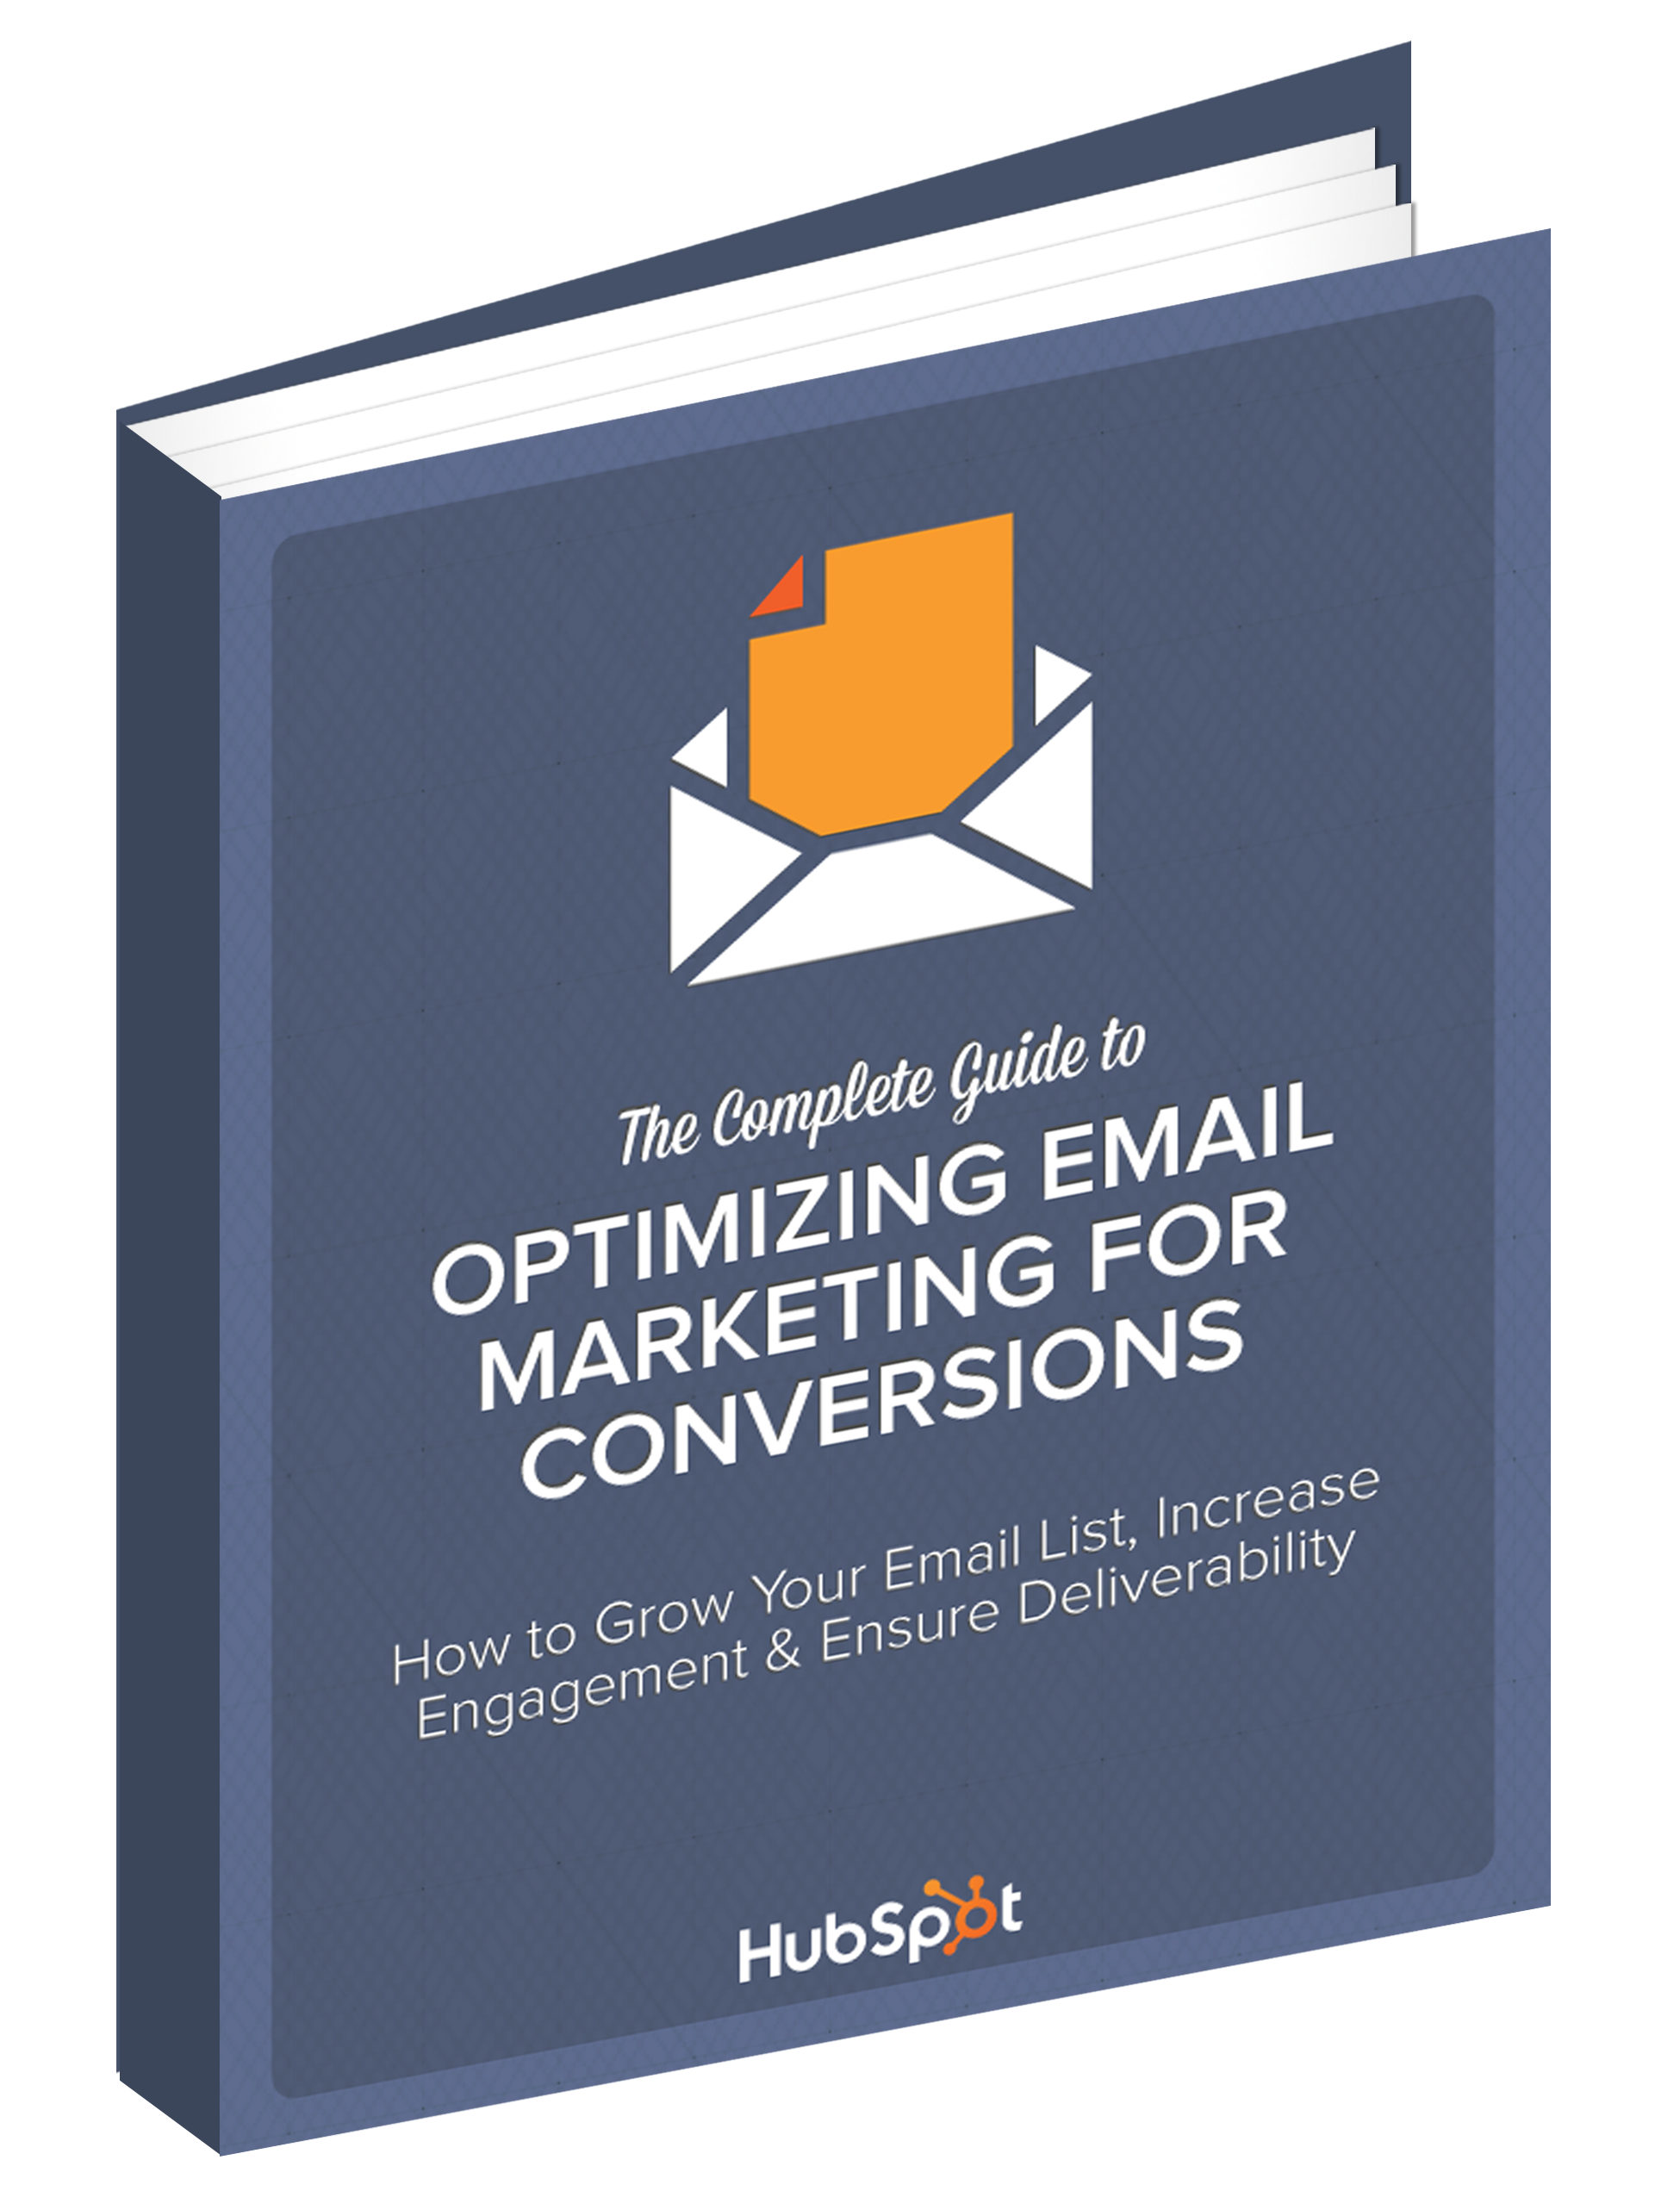 Optimizing Email Marketing for Conversions